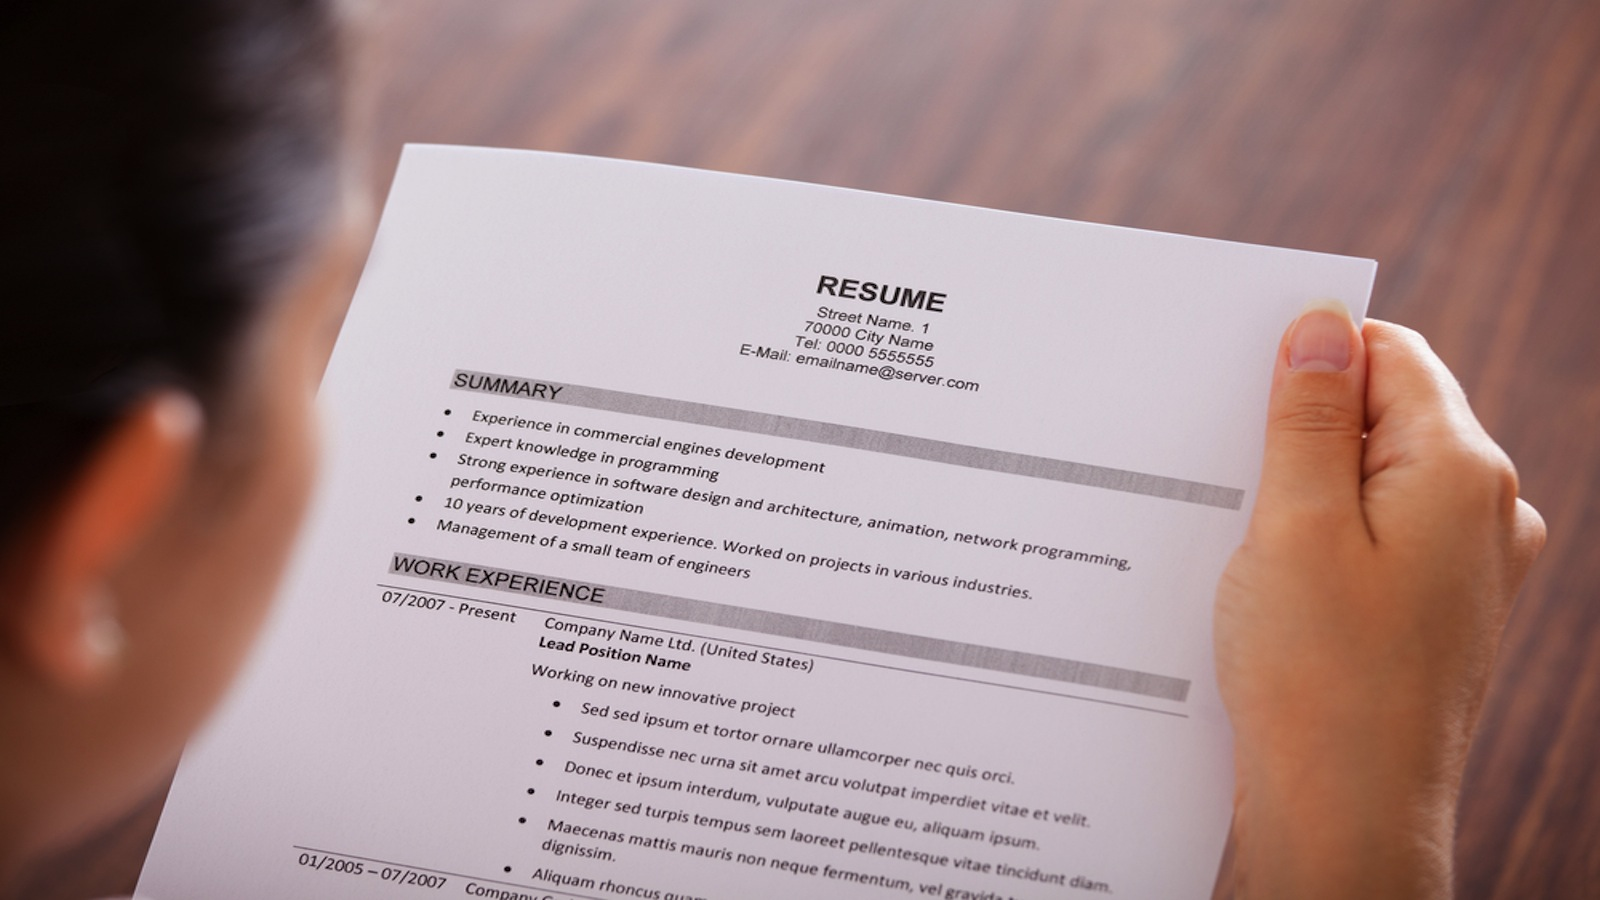 Expert Advice: 8 Resume Myths Debunked - NerdWallet